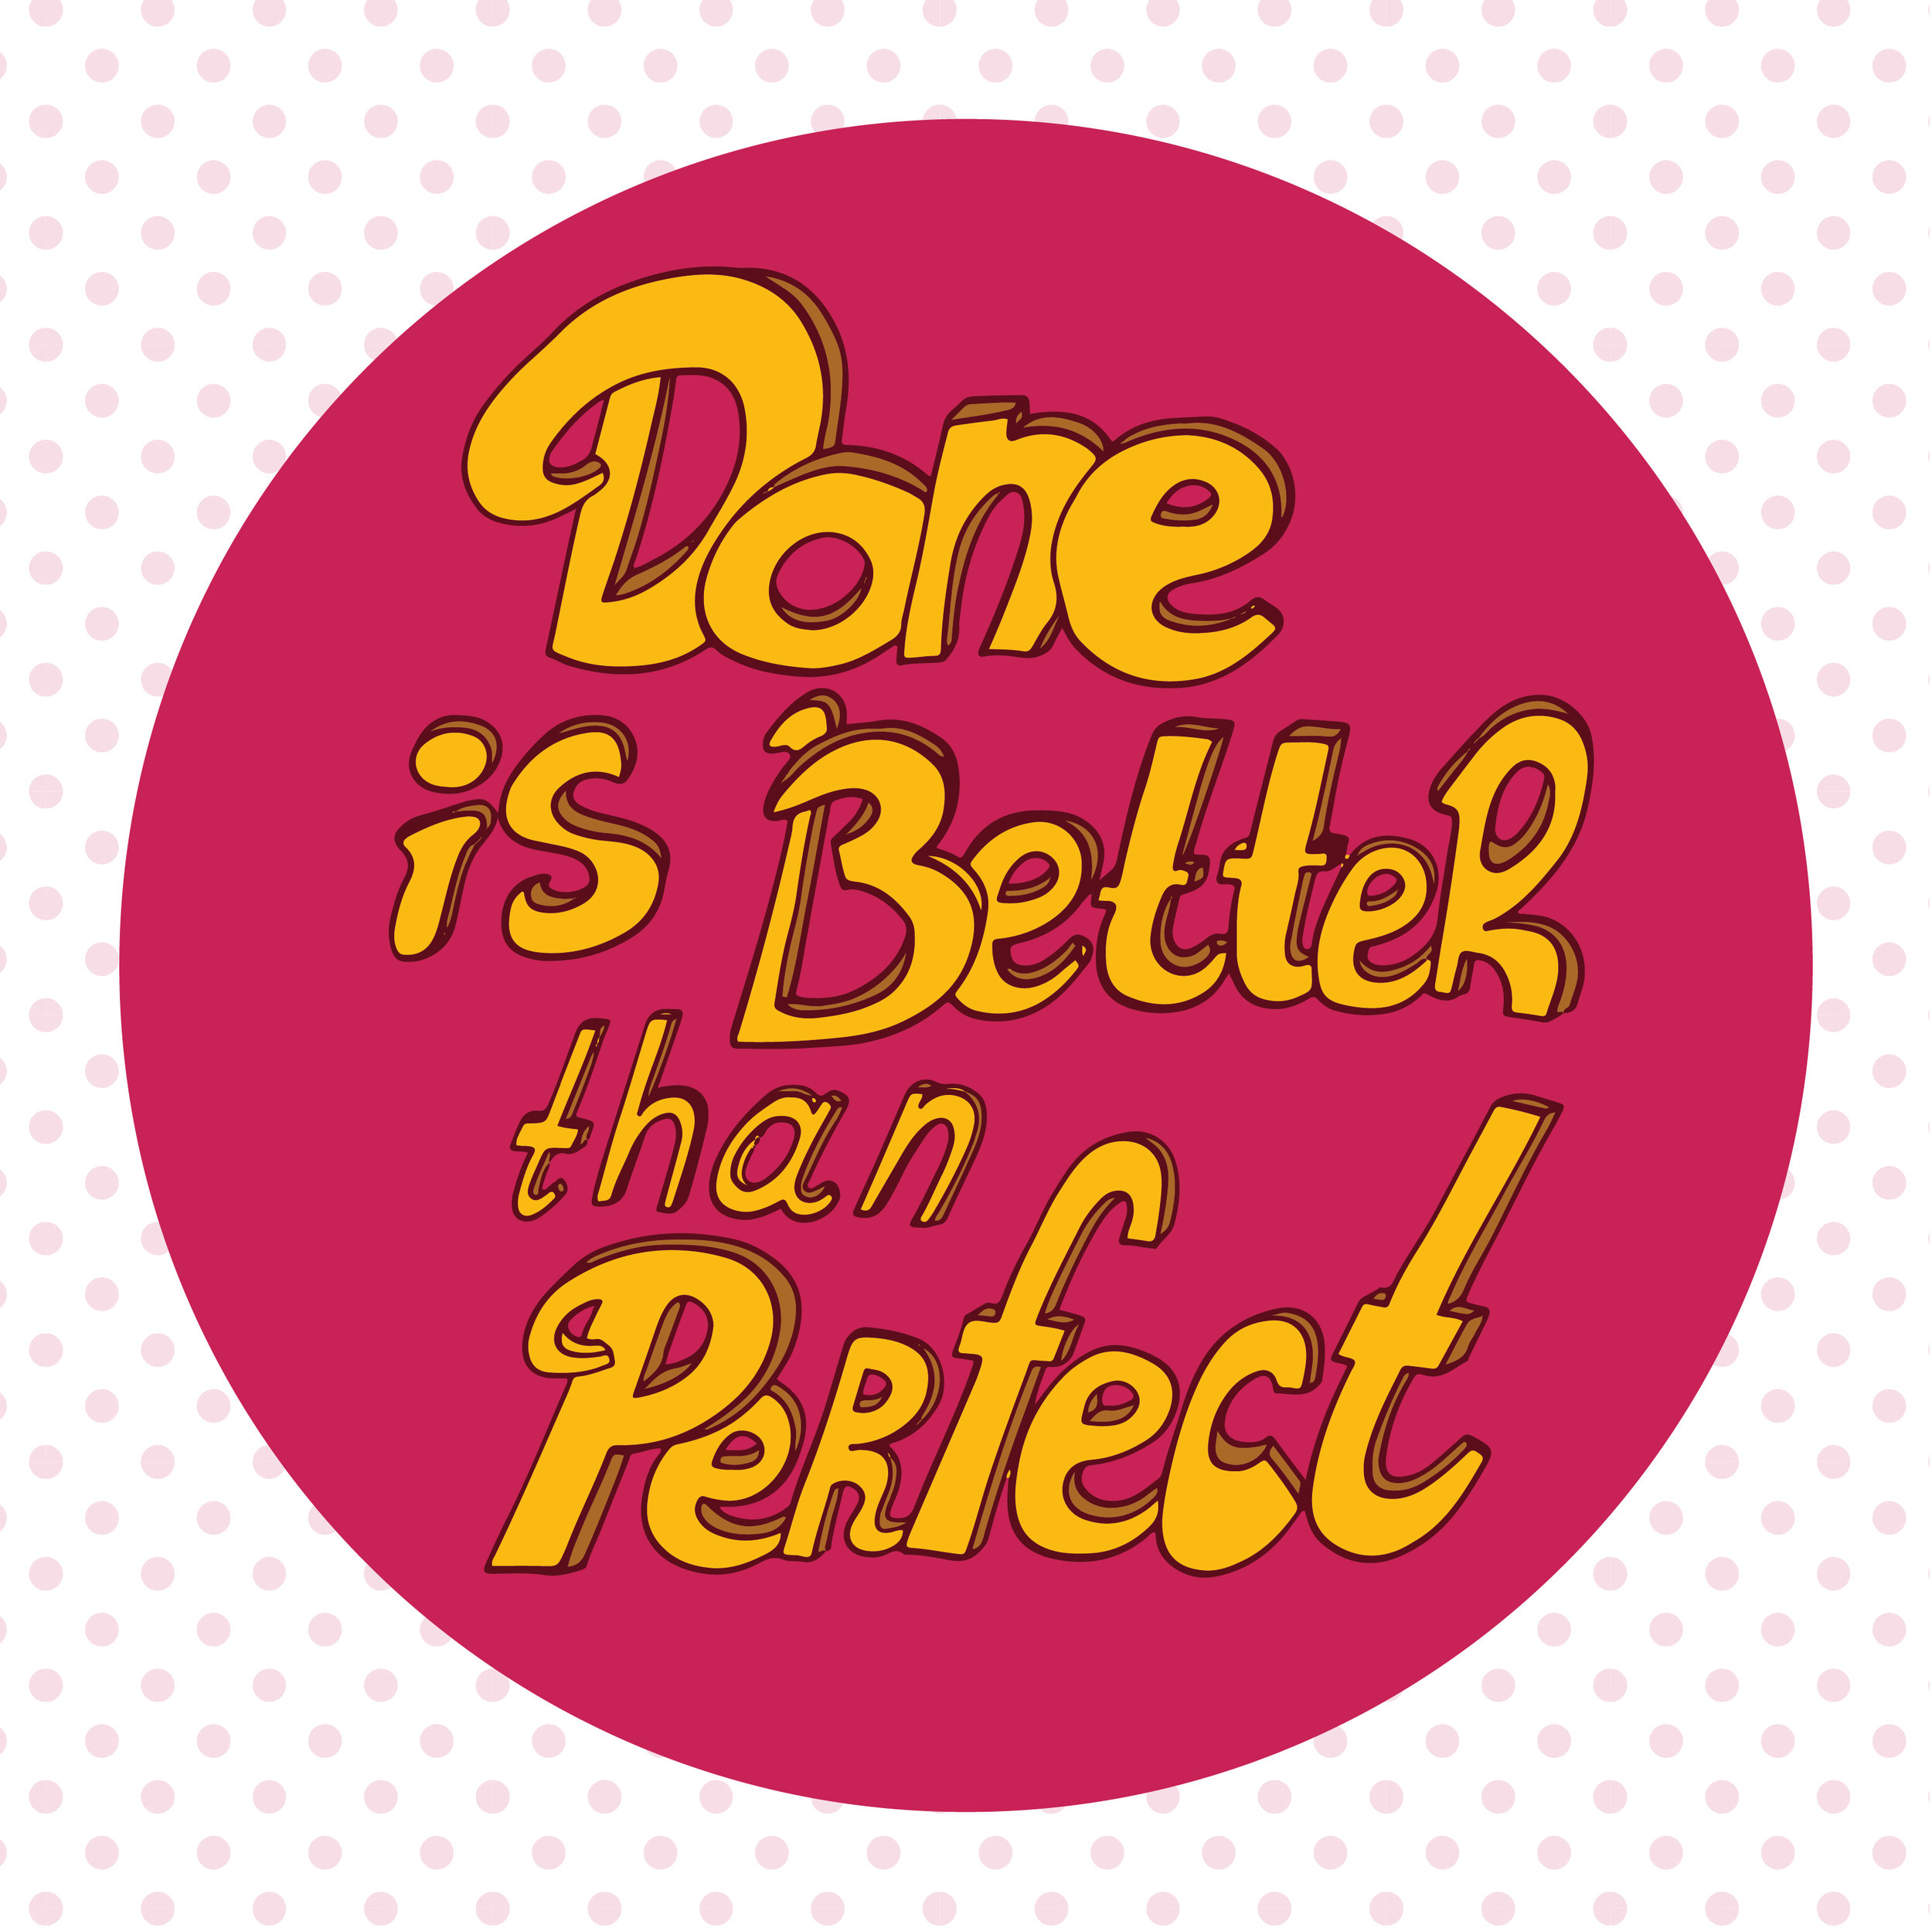 done is better than perfect letteirng.jpg